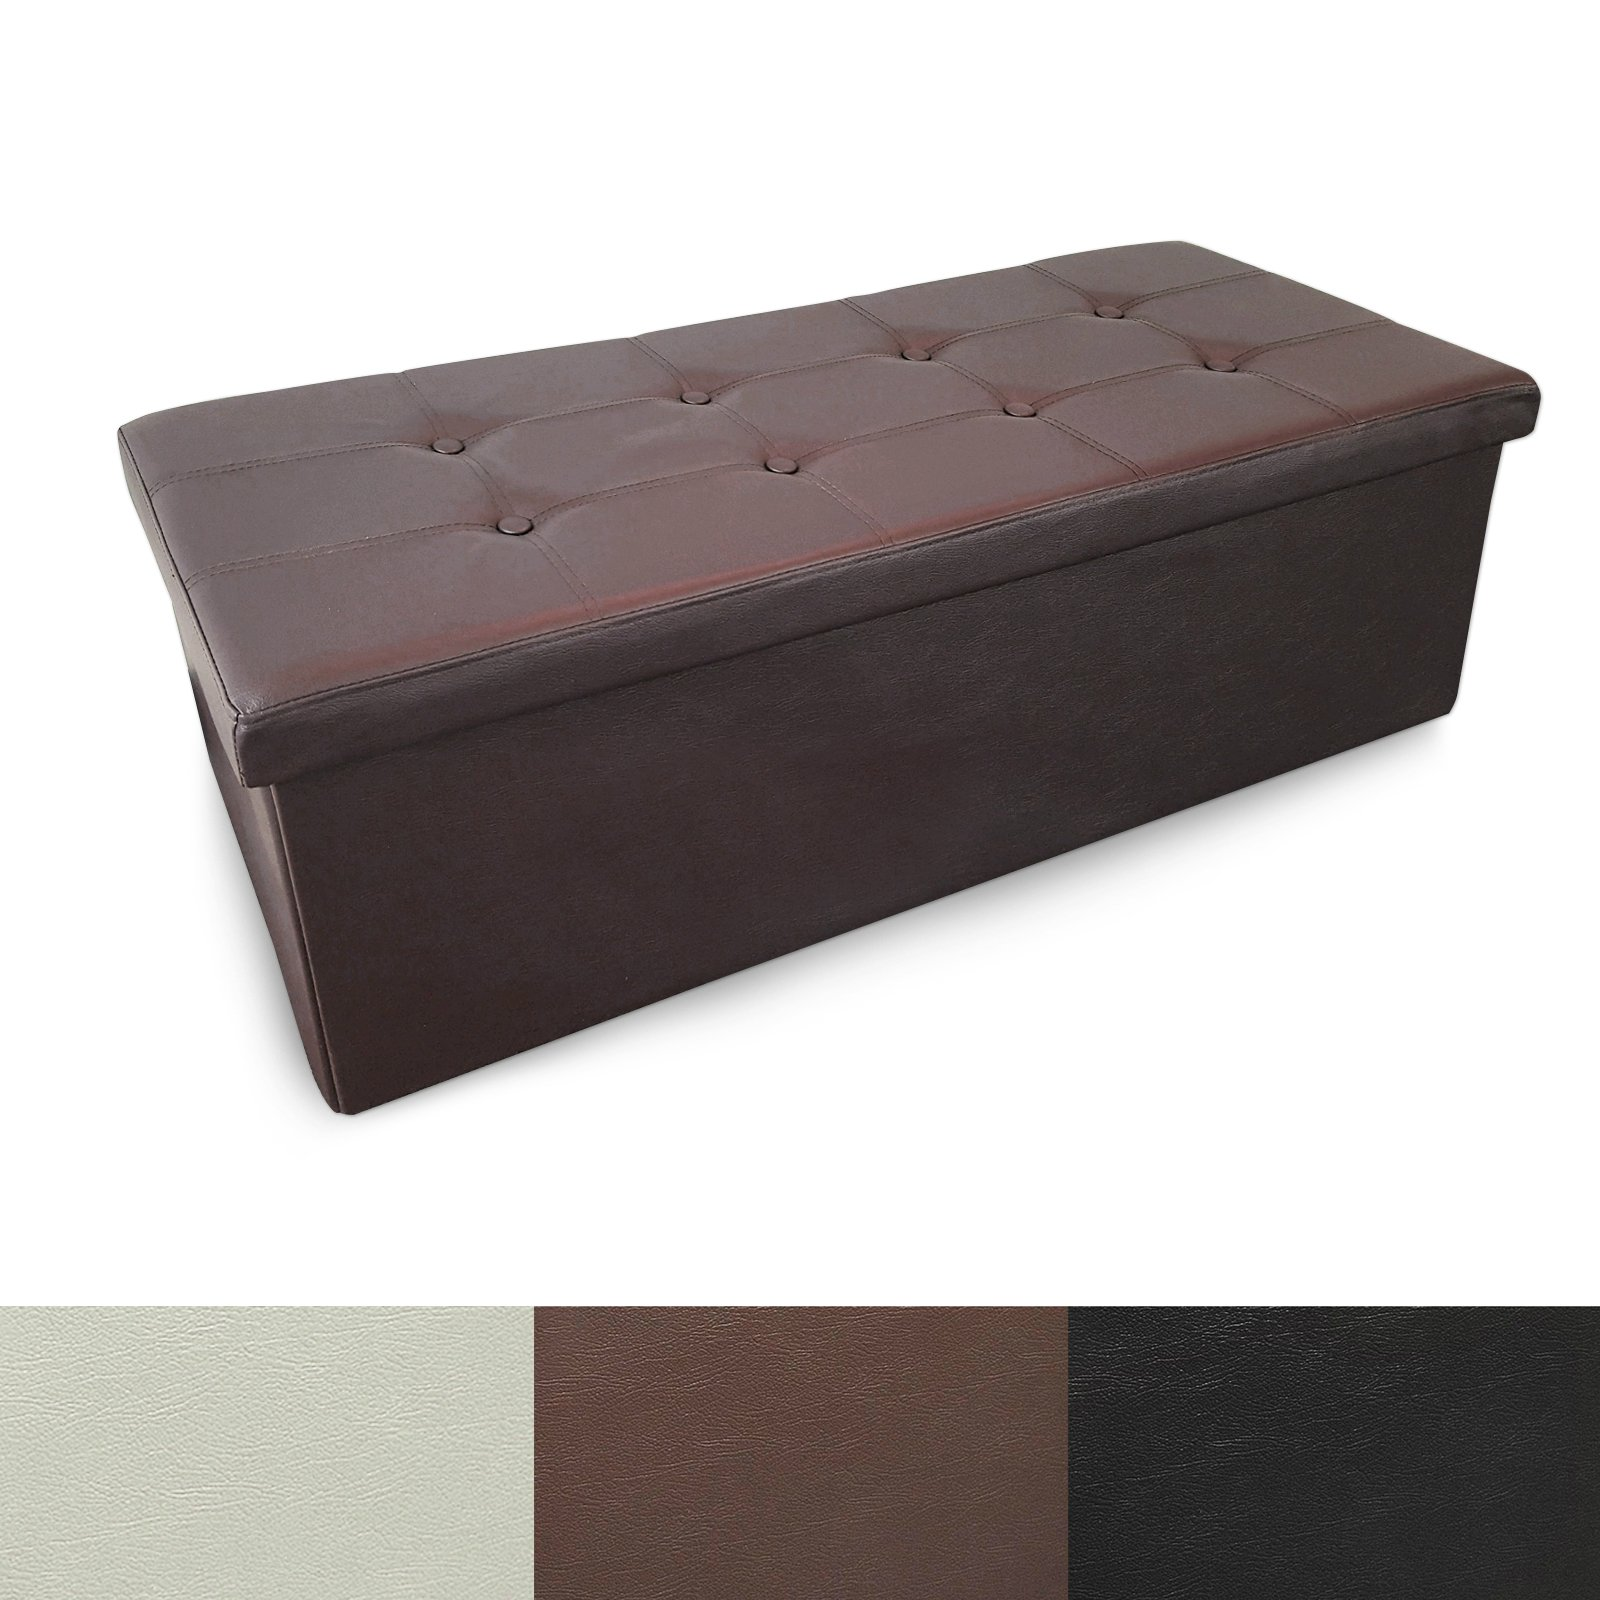 casa pura Large Folding Ottoman with Storage | Luxury Upholstered Storage Bench for Bedroom & Living Room | Faux Leather - Brown | 3 Sizes available - 42'' x 15'' x 15''